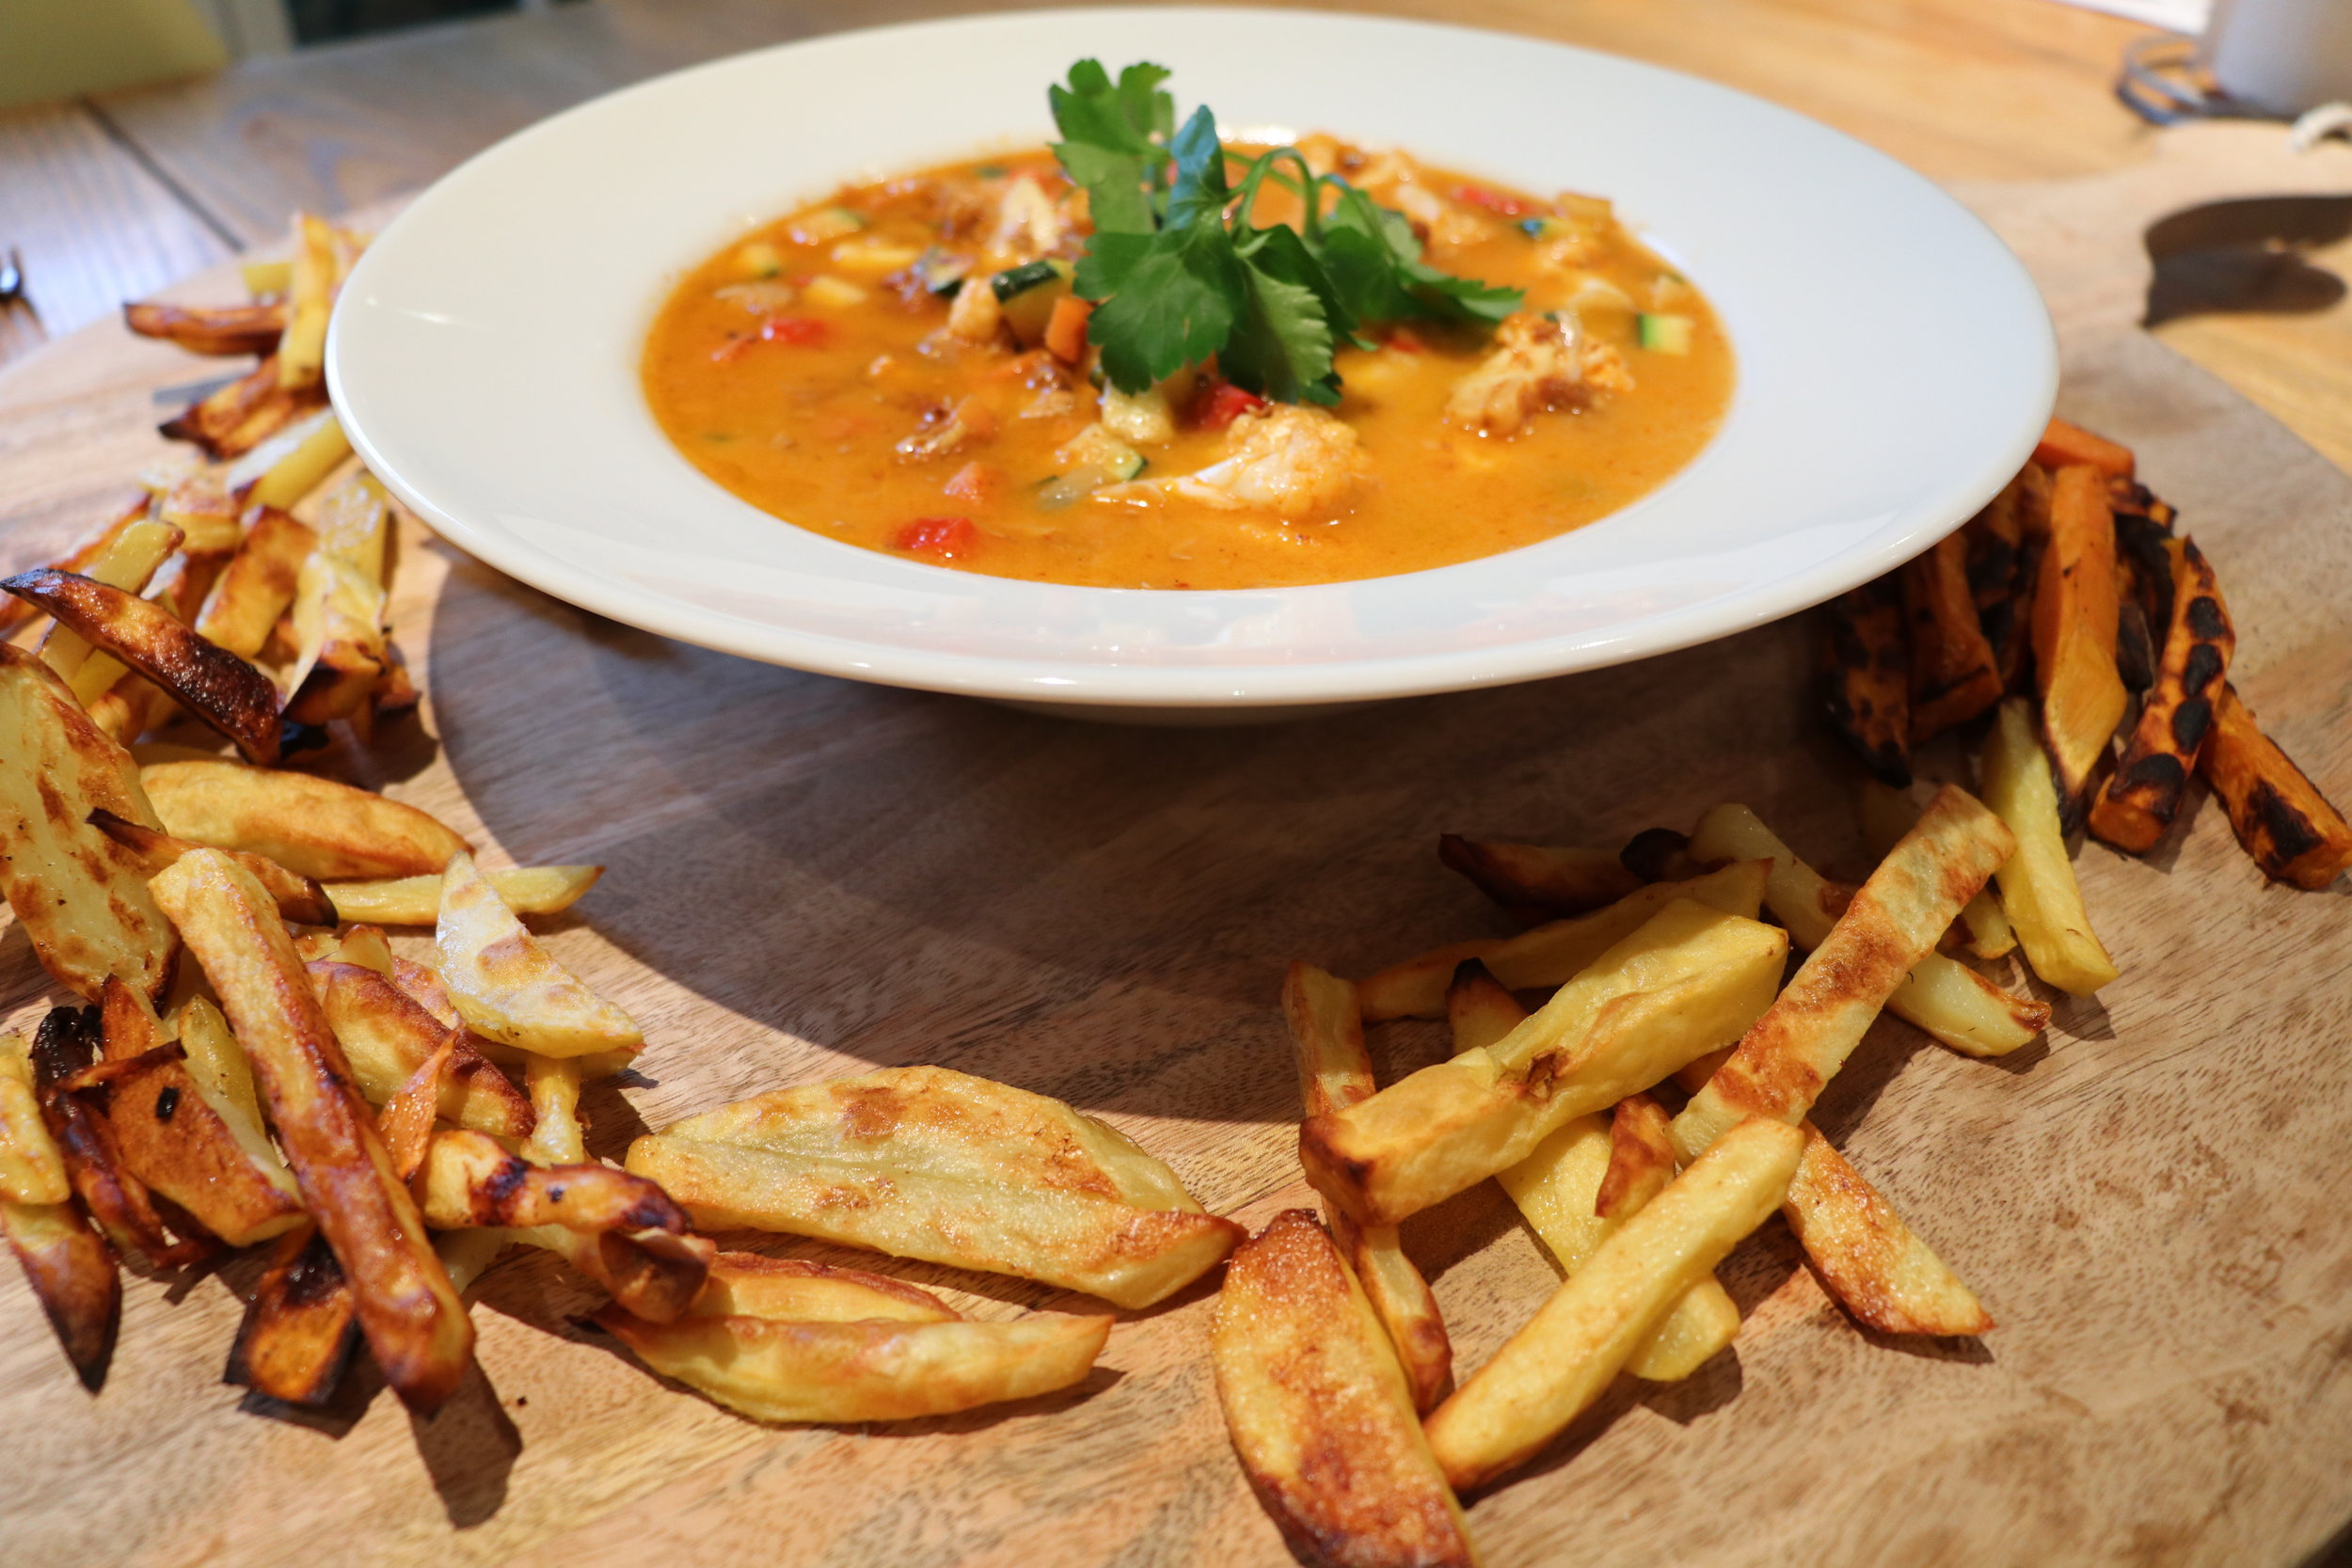 Easy 25 Min Max Spicy Vegetable Curry and Sweet Potato Chips